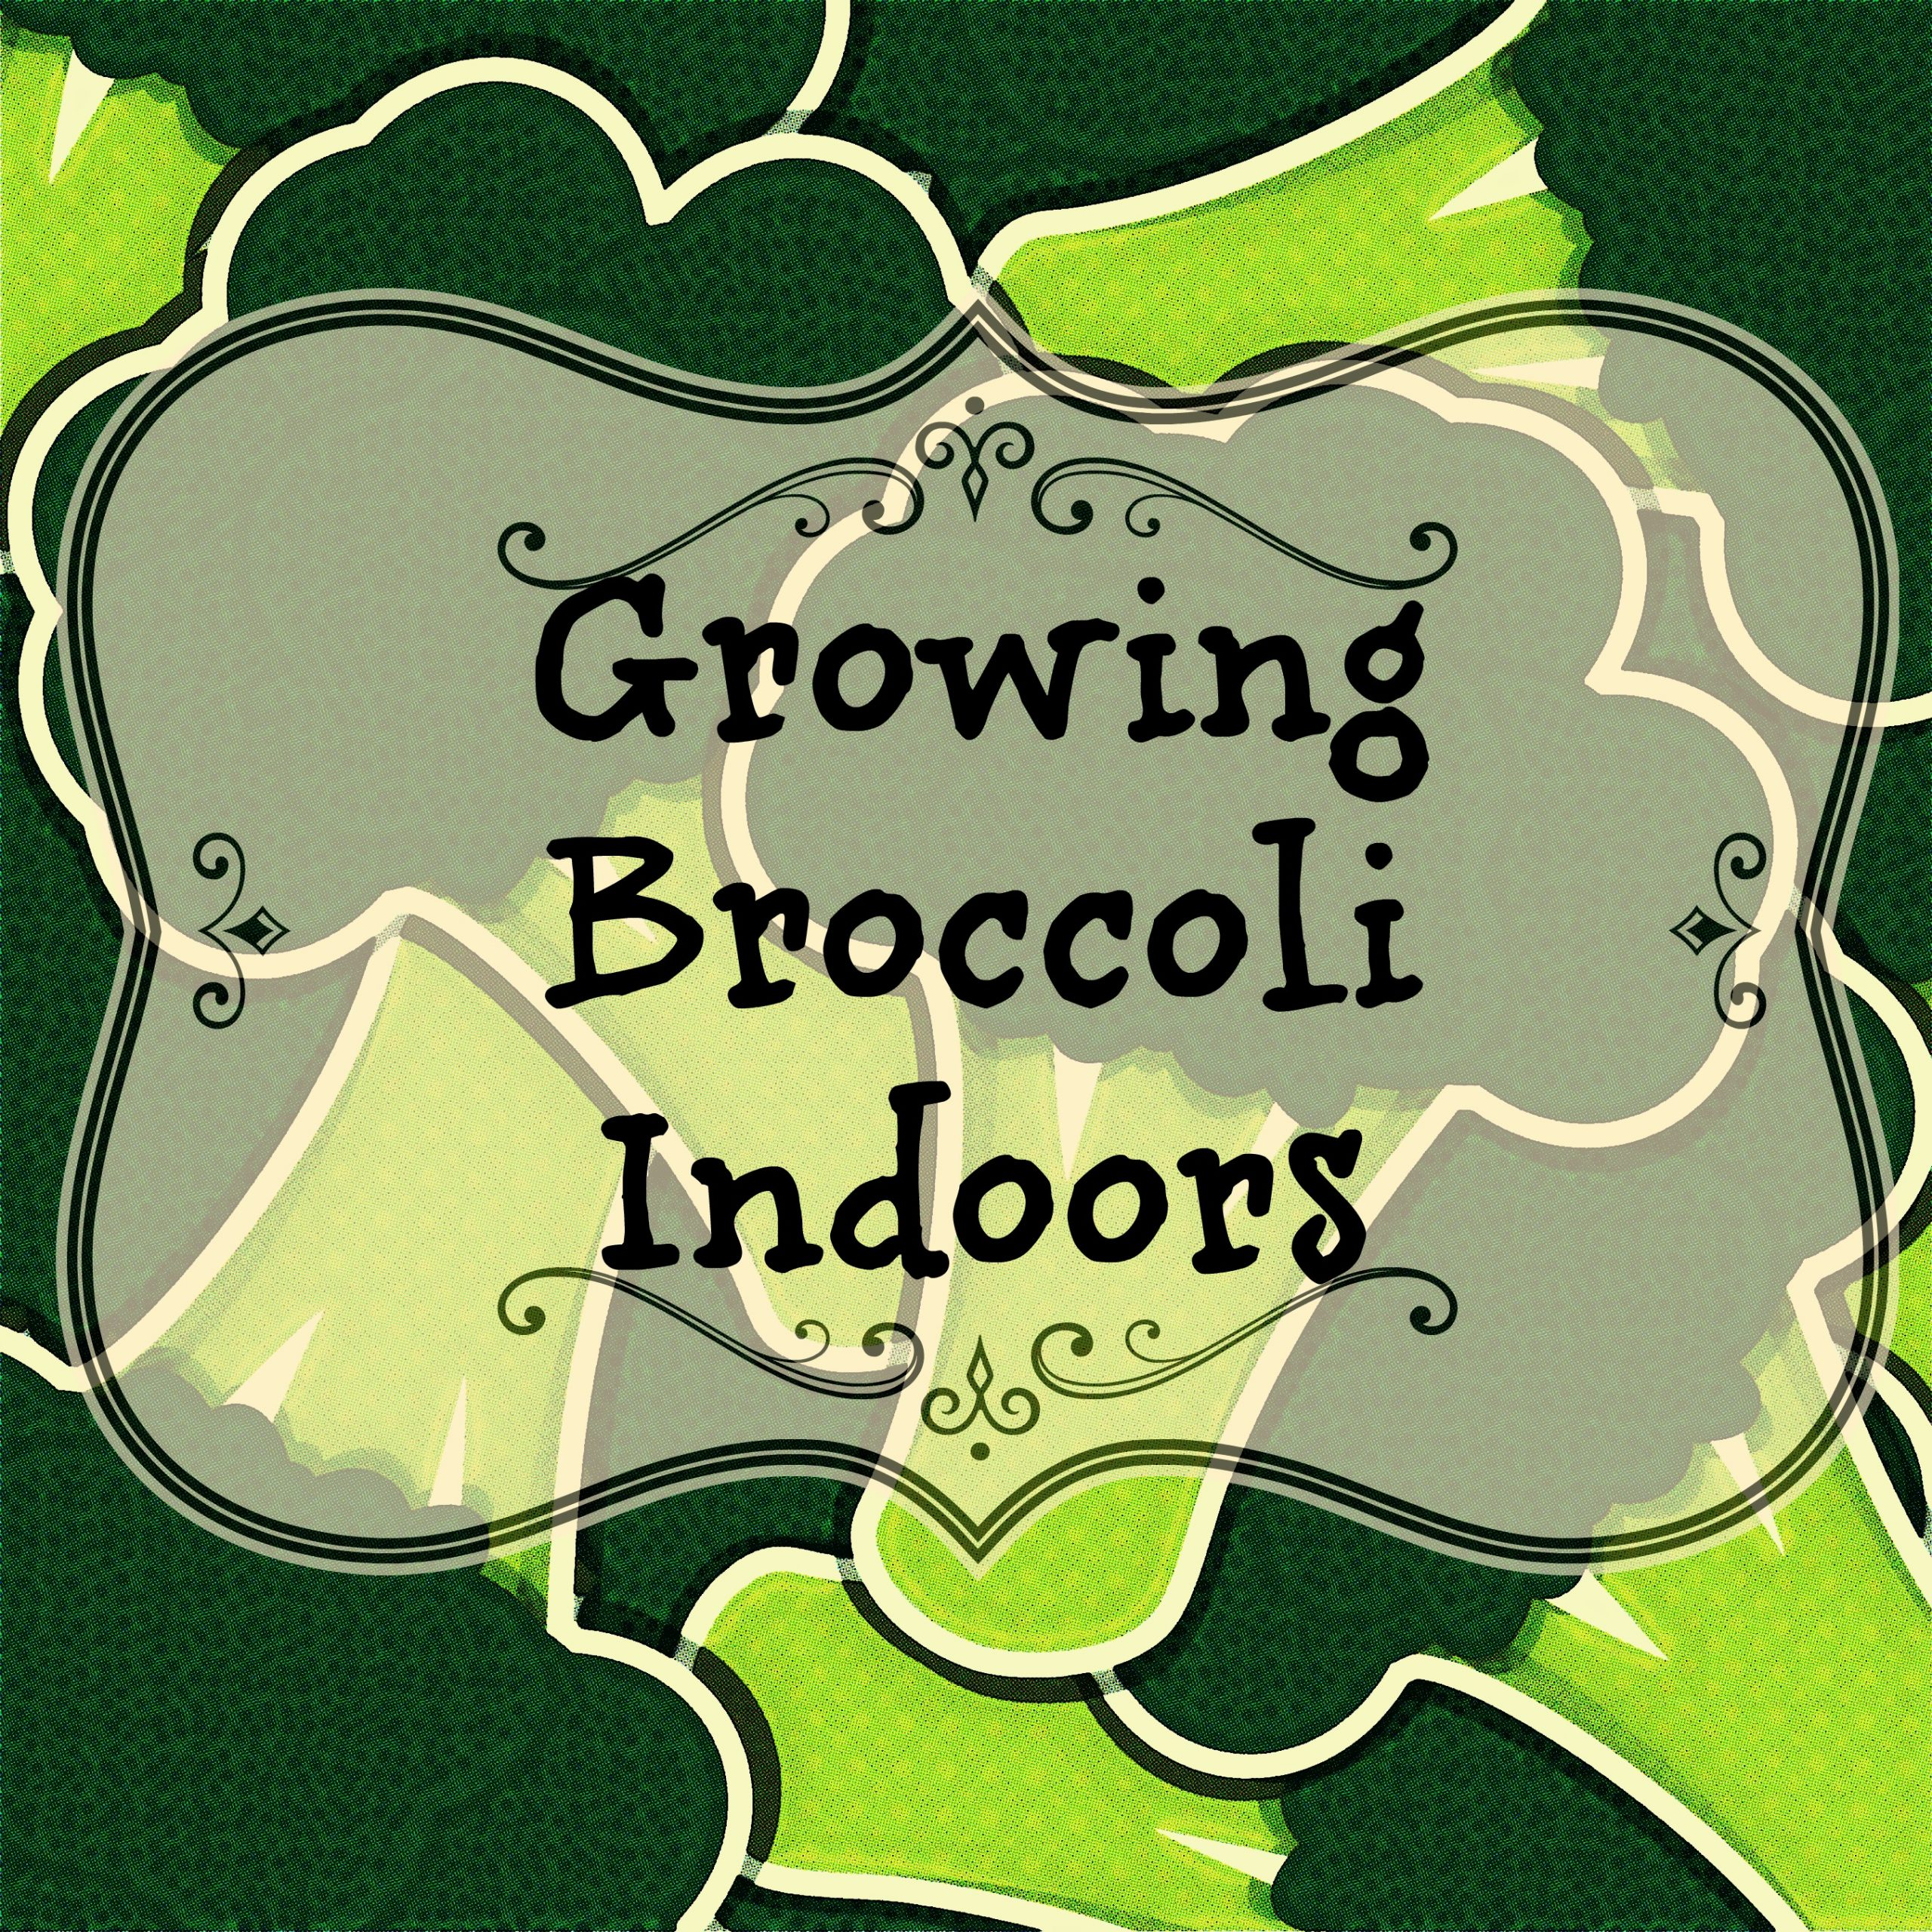 Growing Broccoli Indoors